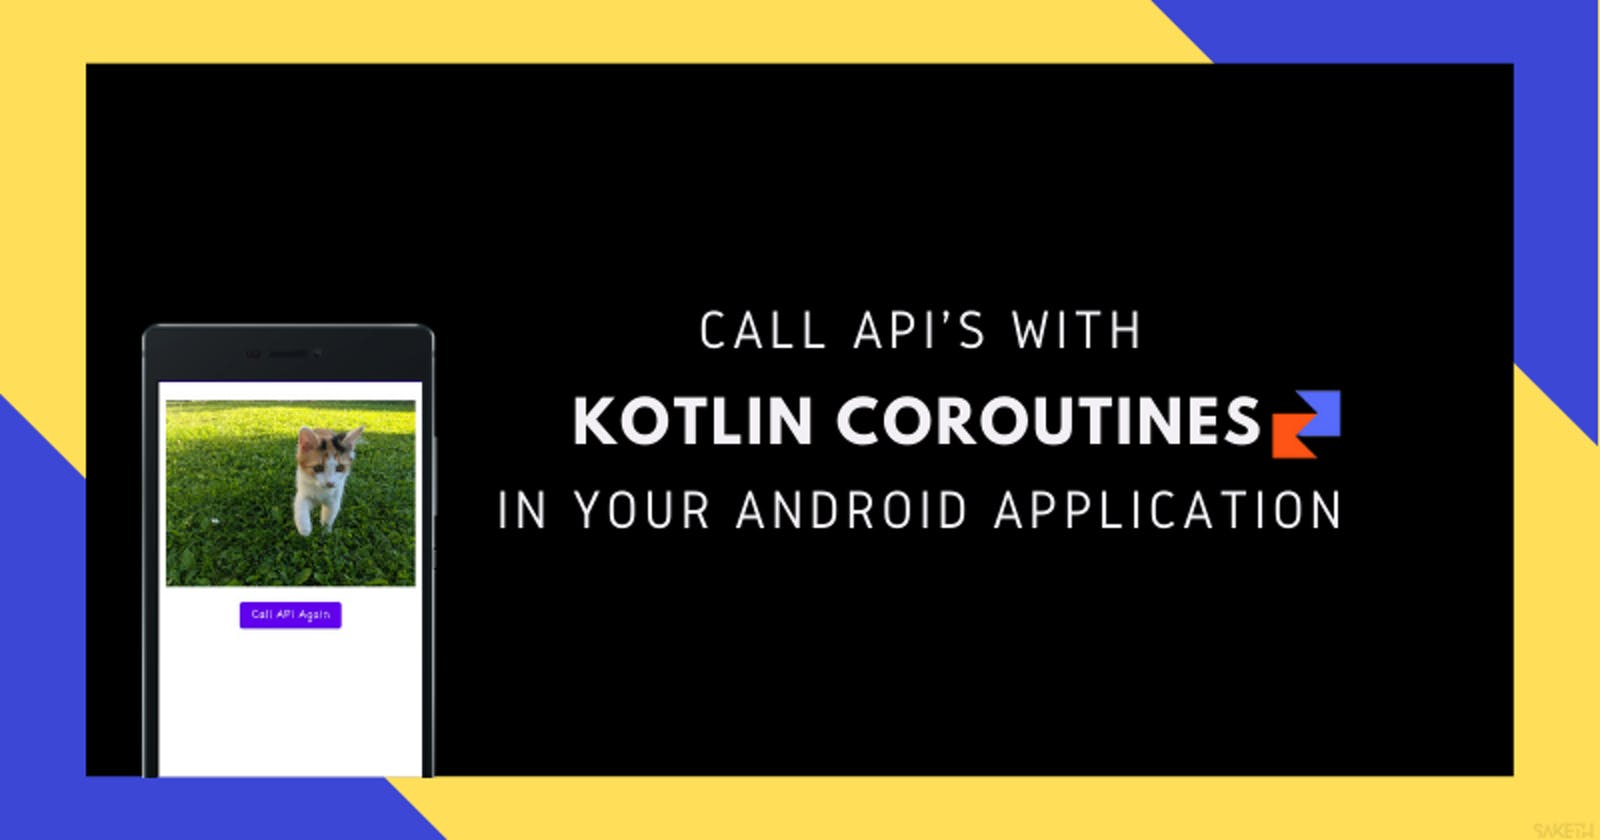 Call API's With Kotlin-Coroutines In Your Android Application